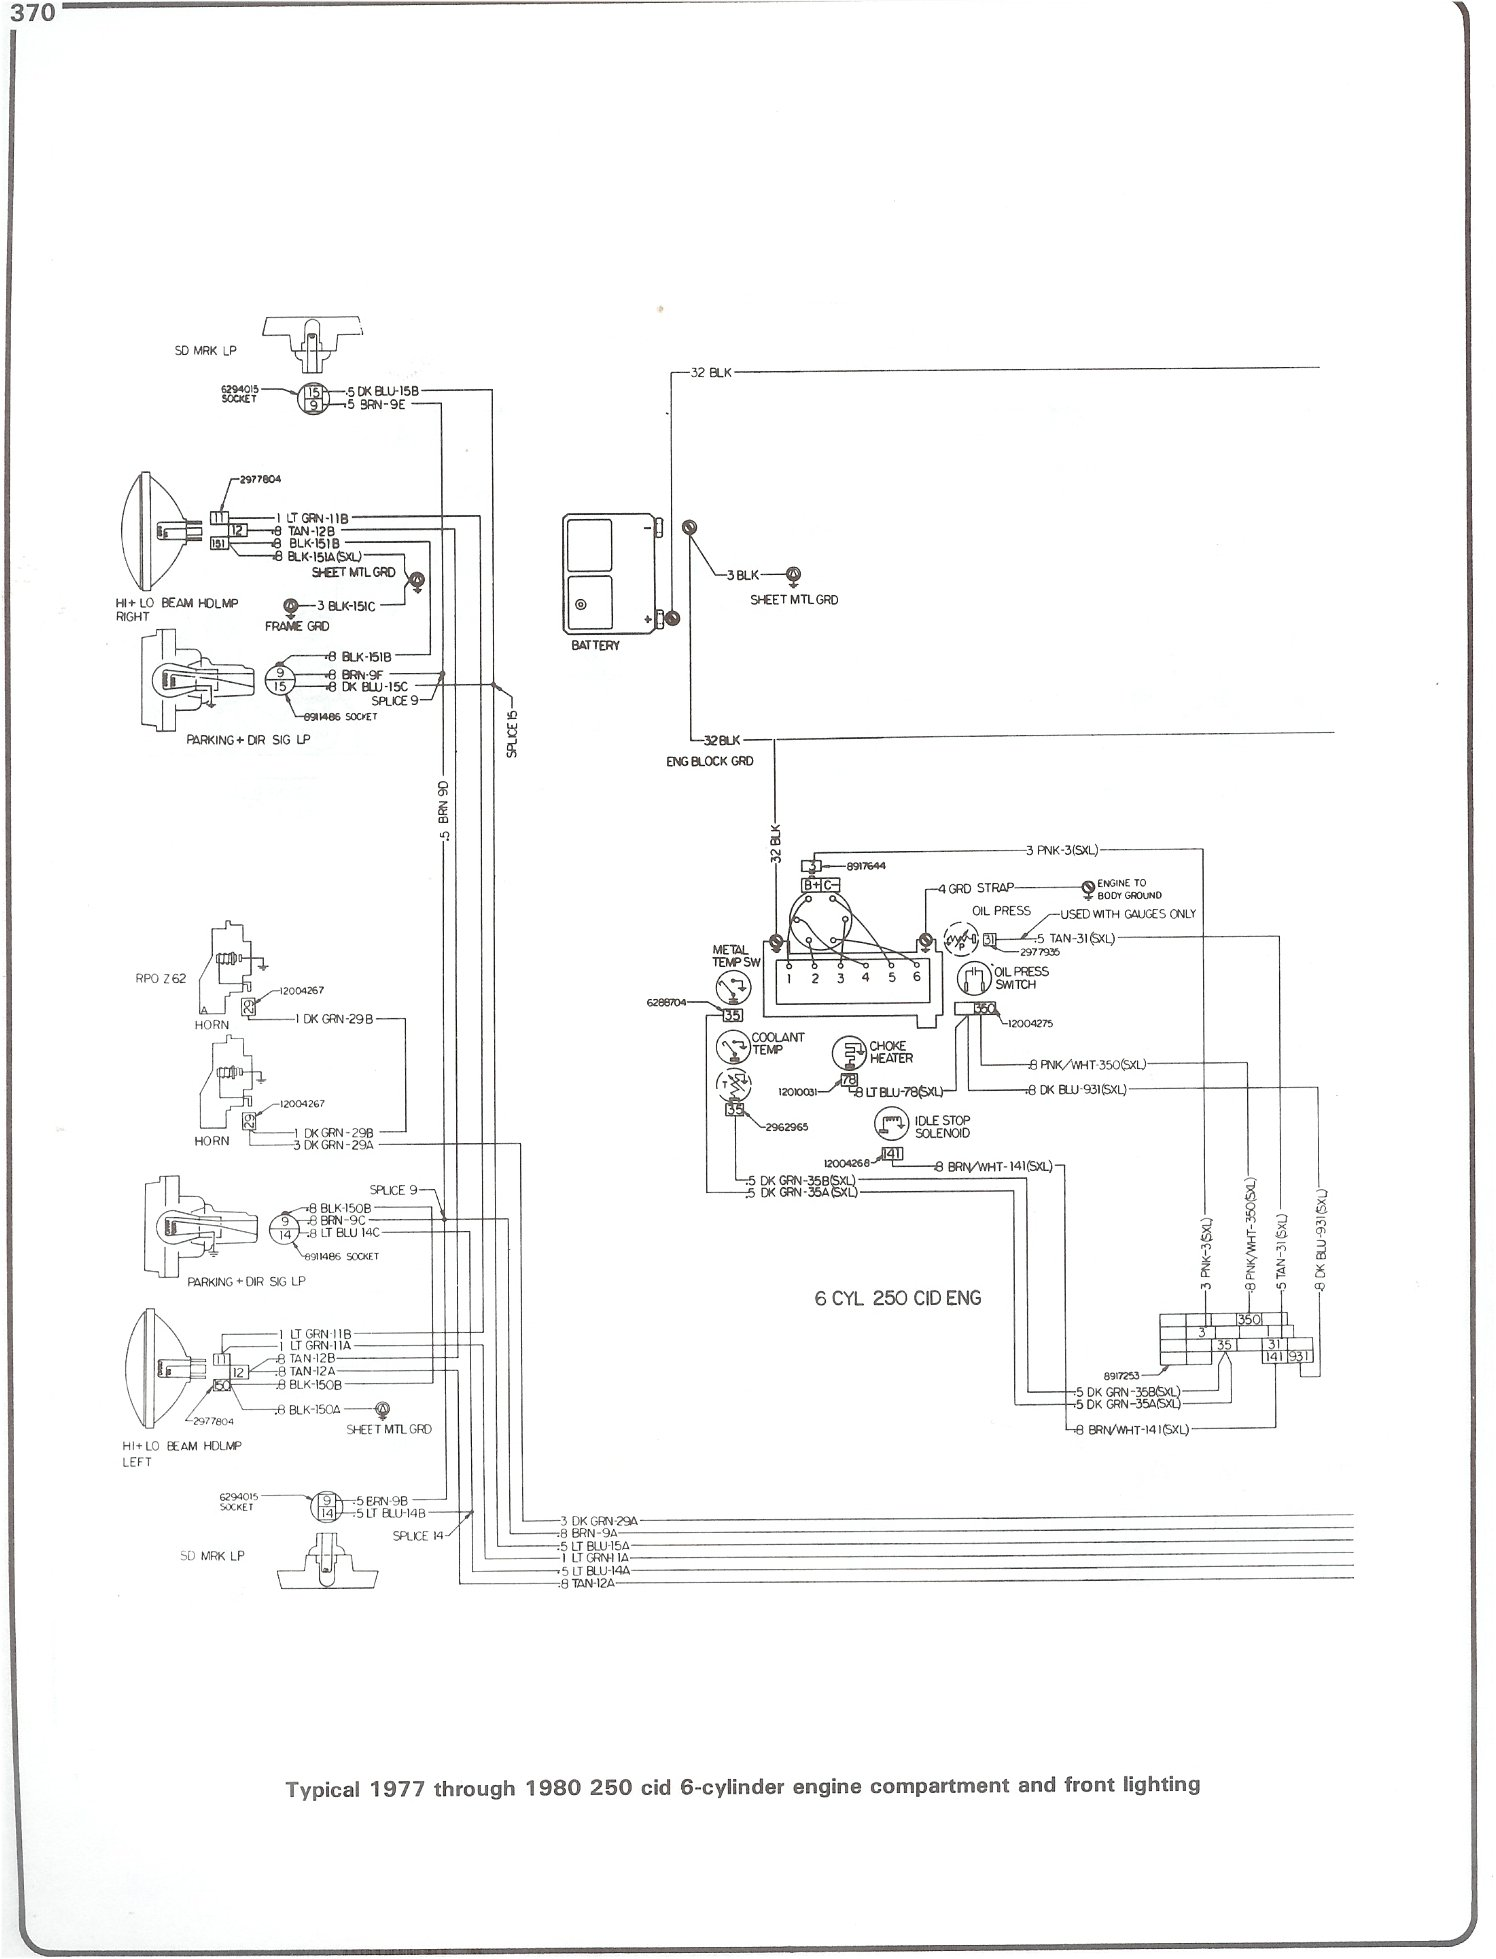 1985 Chevy Engine Wiring Diagram | Wiring Diagram  Wiring Diagram - AutoScout24